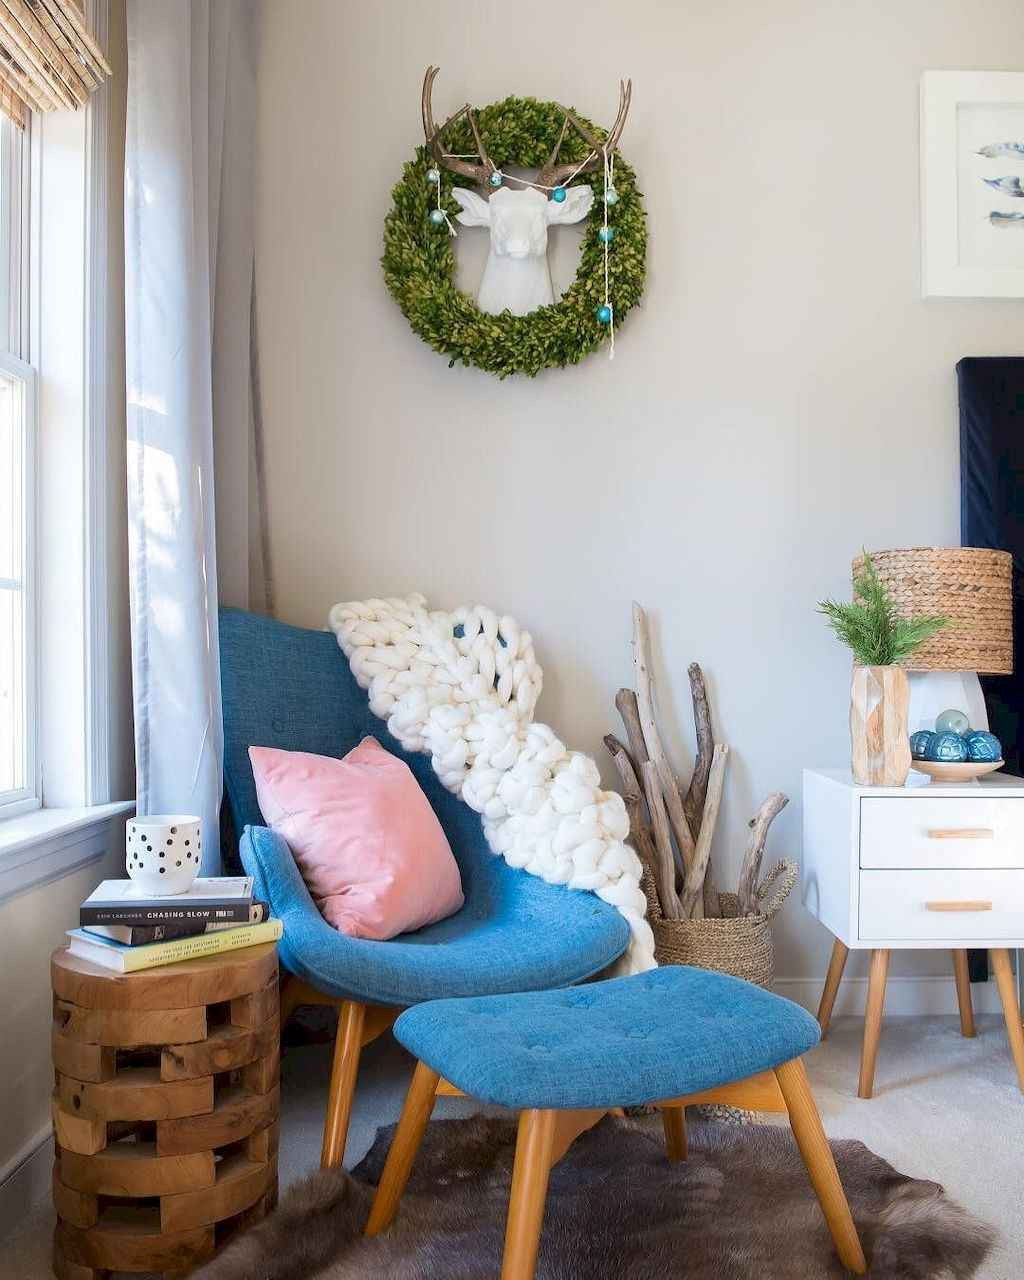 Cozy apartment decorating ideas on a budget (28)